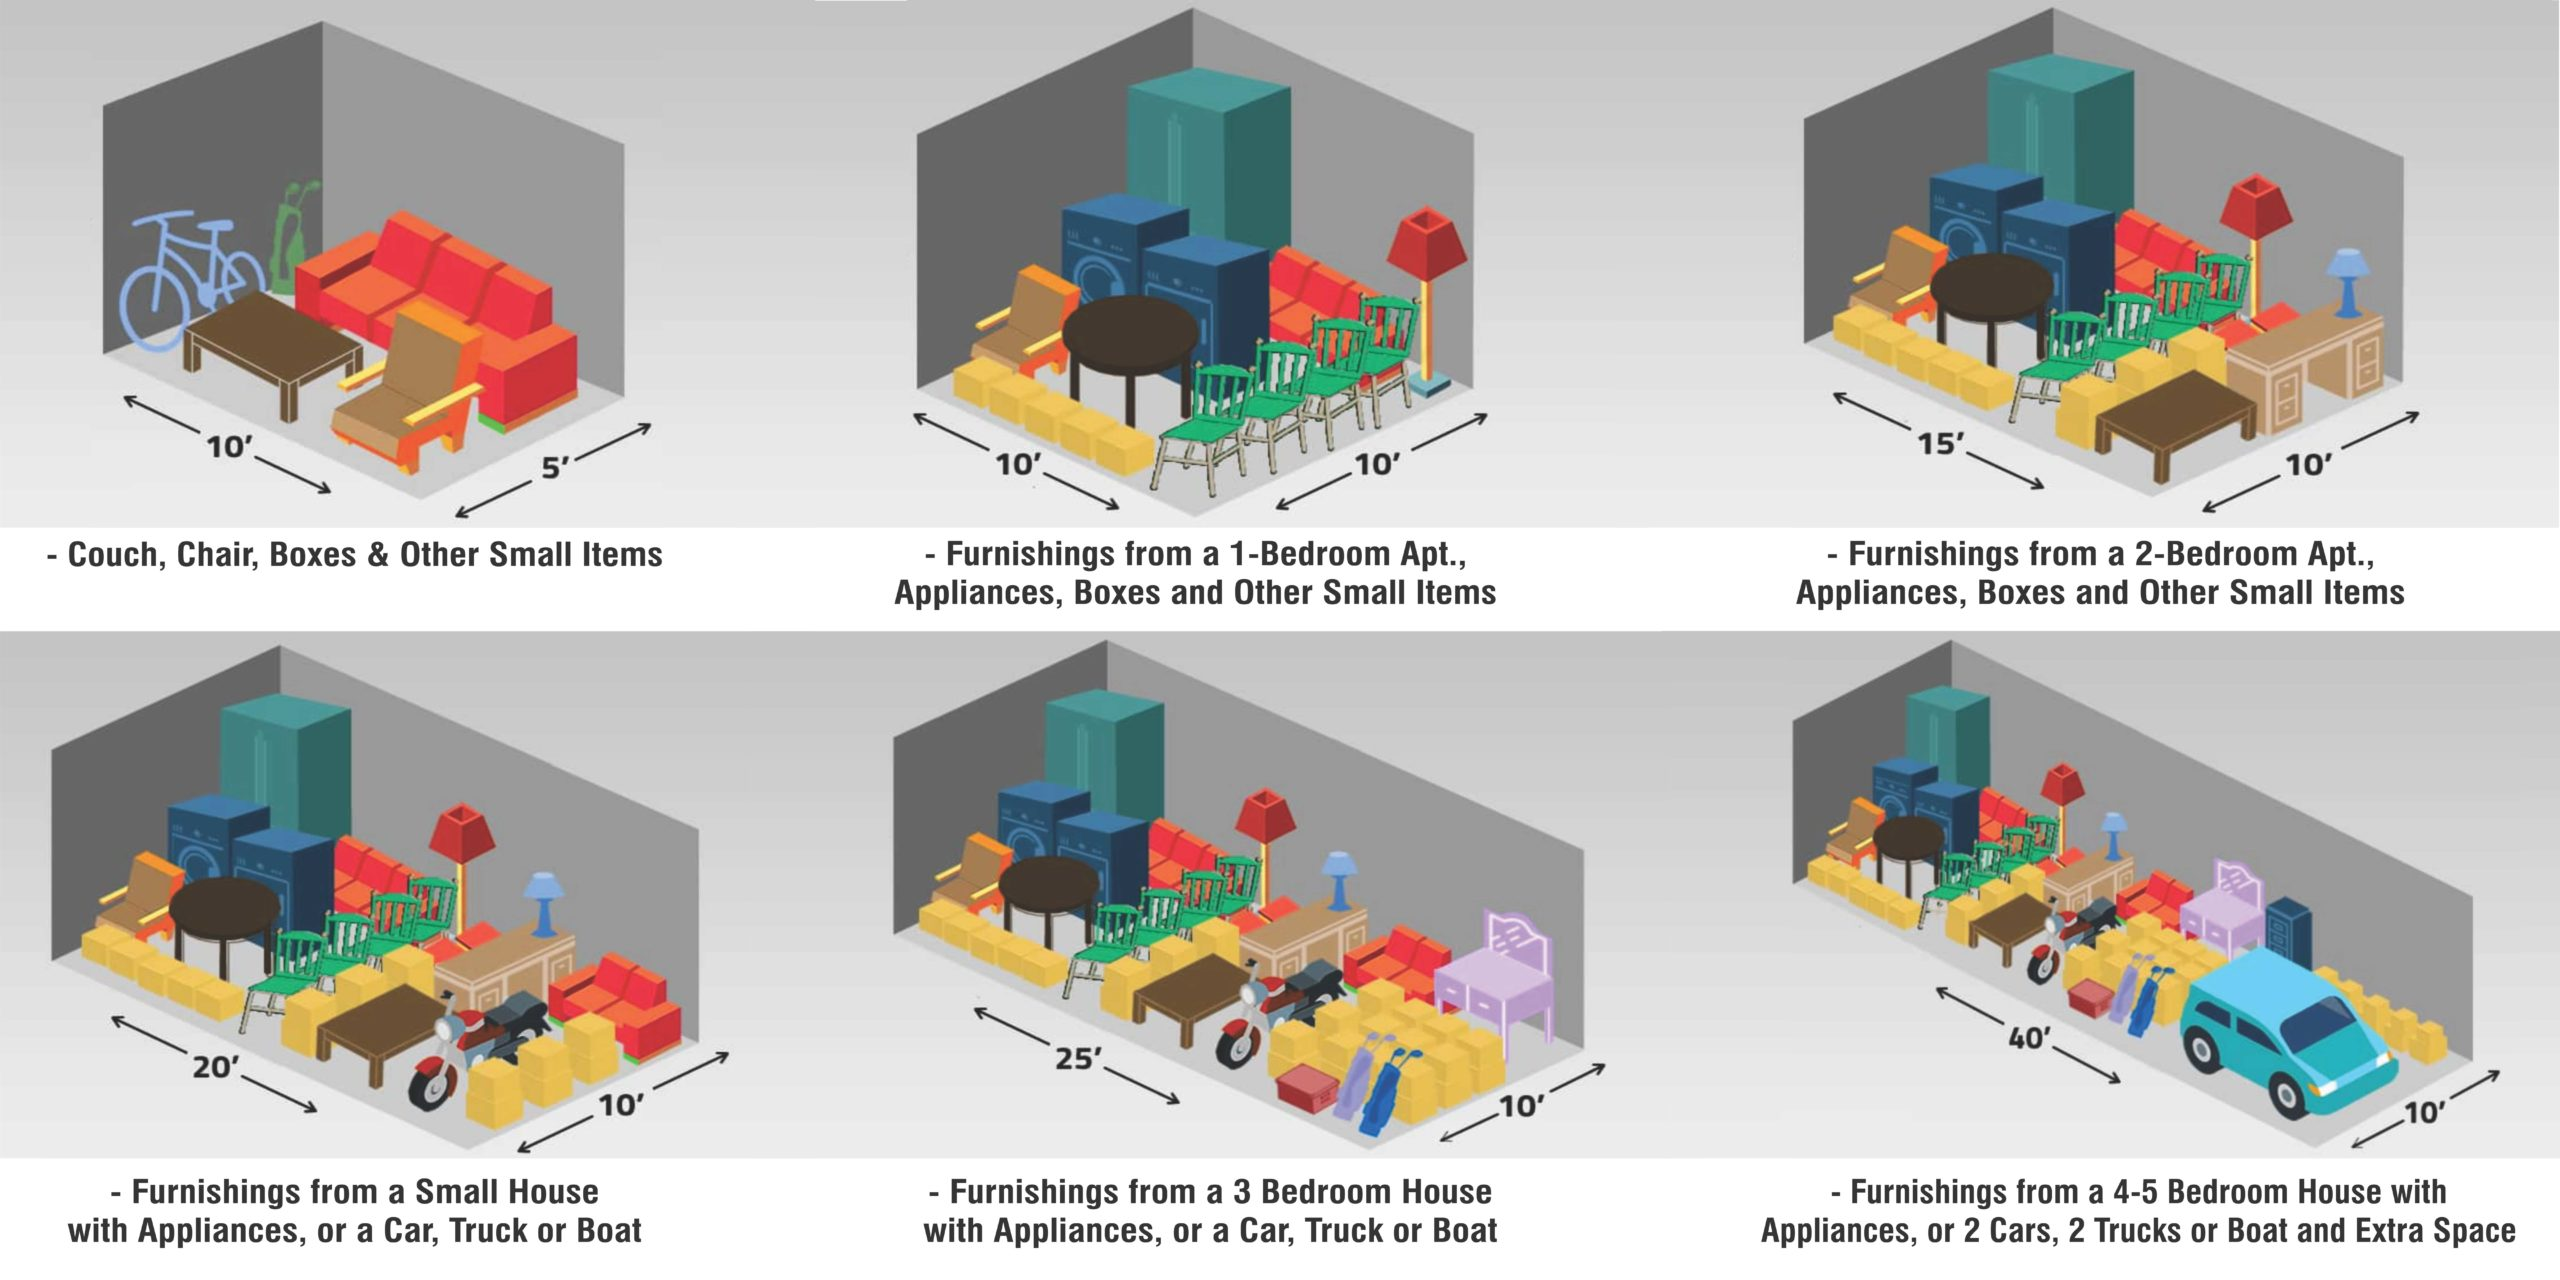 A chart comparing the different rental unit sizes.